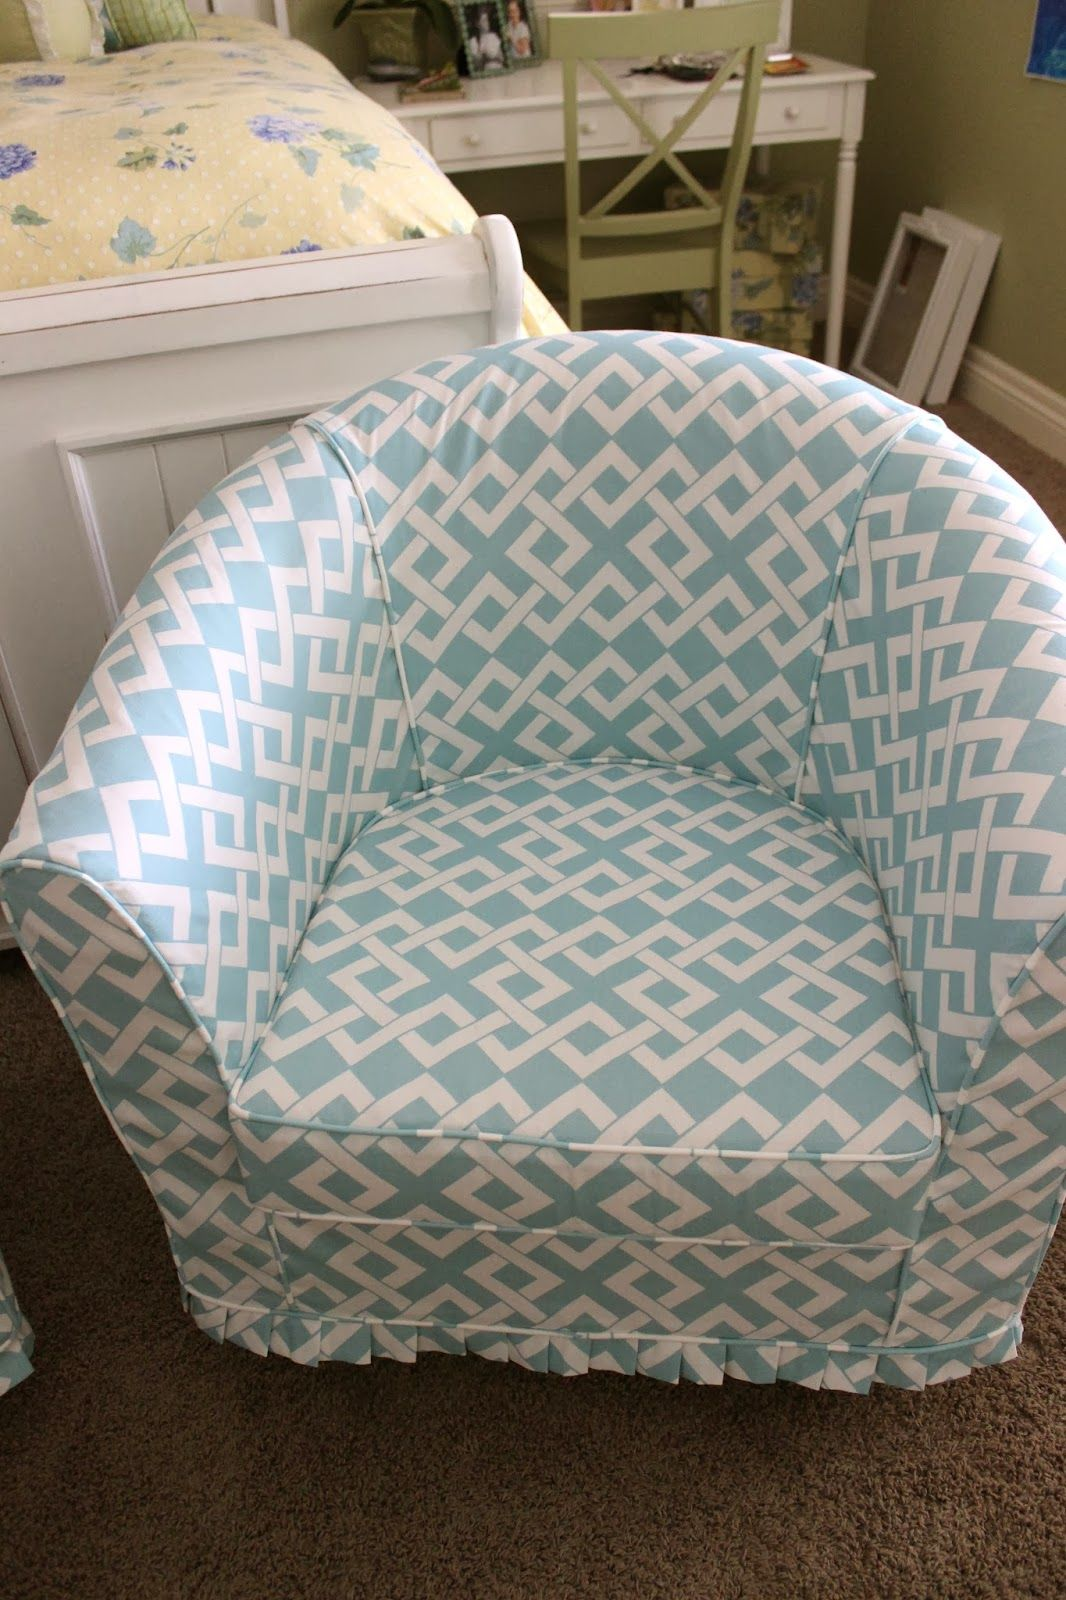 Barrel Chair Slipcover Ikea Barrel Chair Slipcover There Was Only A Bit Of Matching